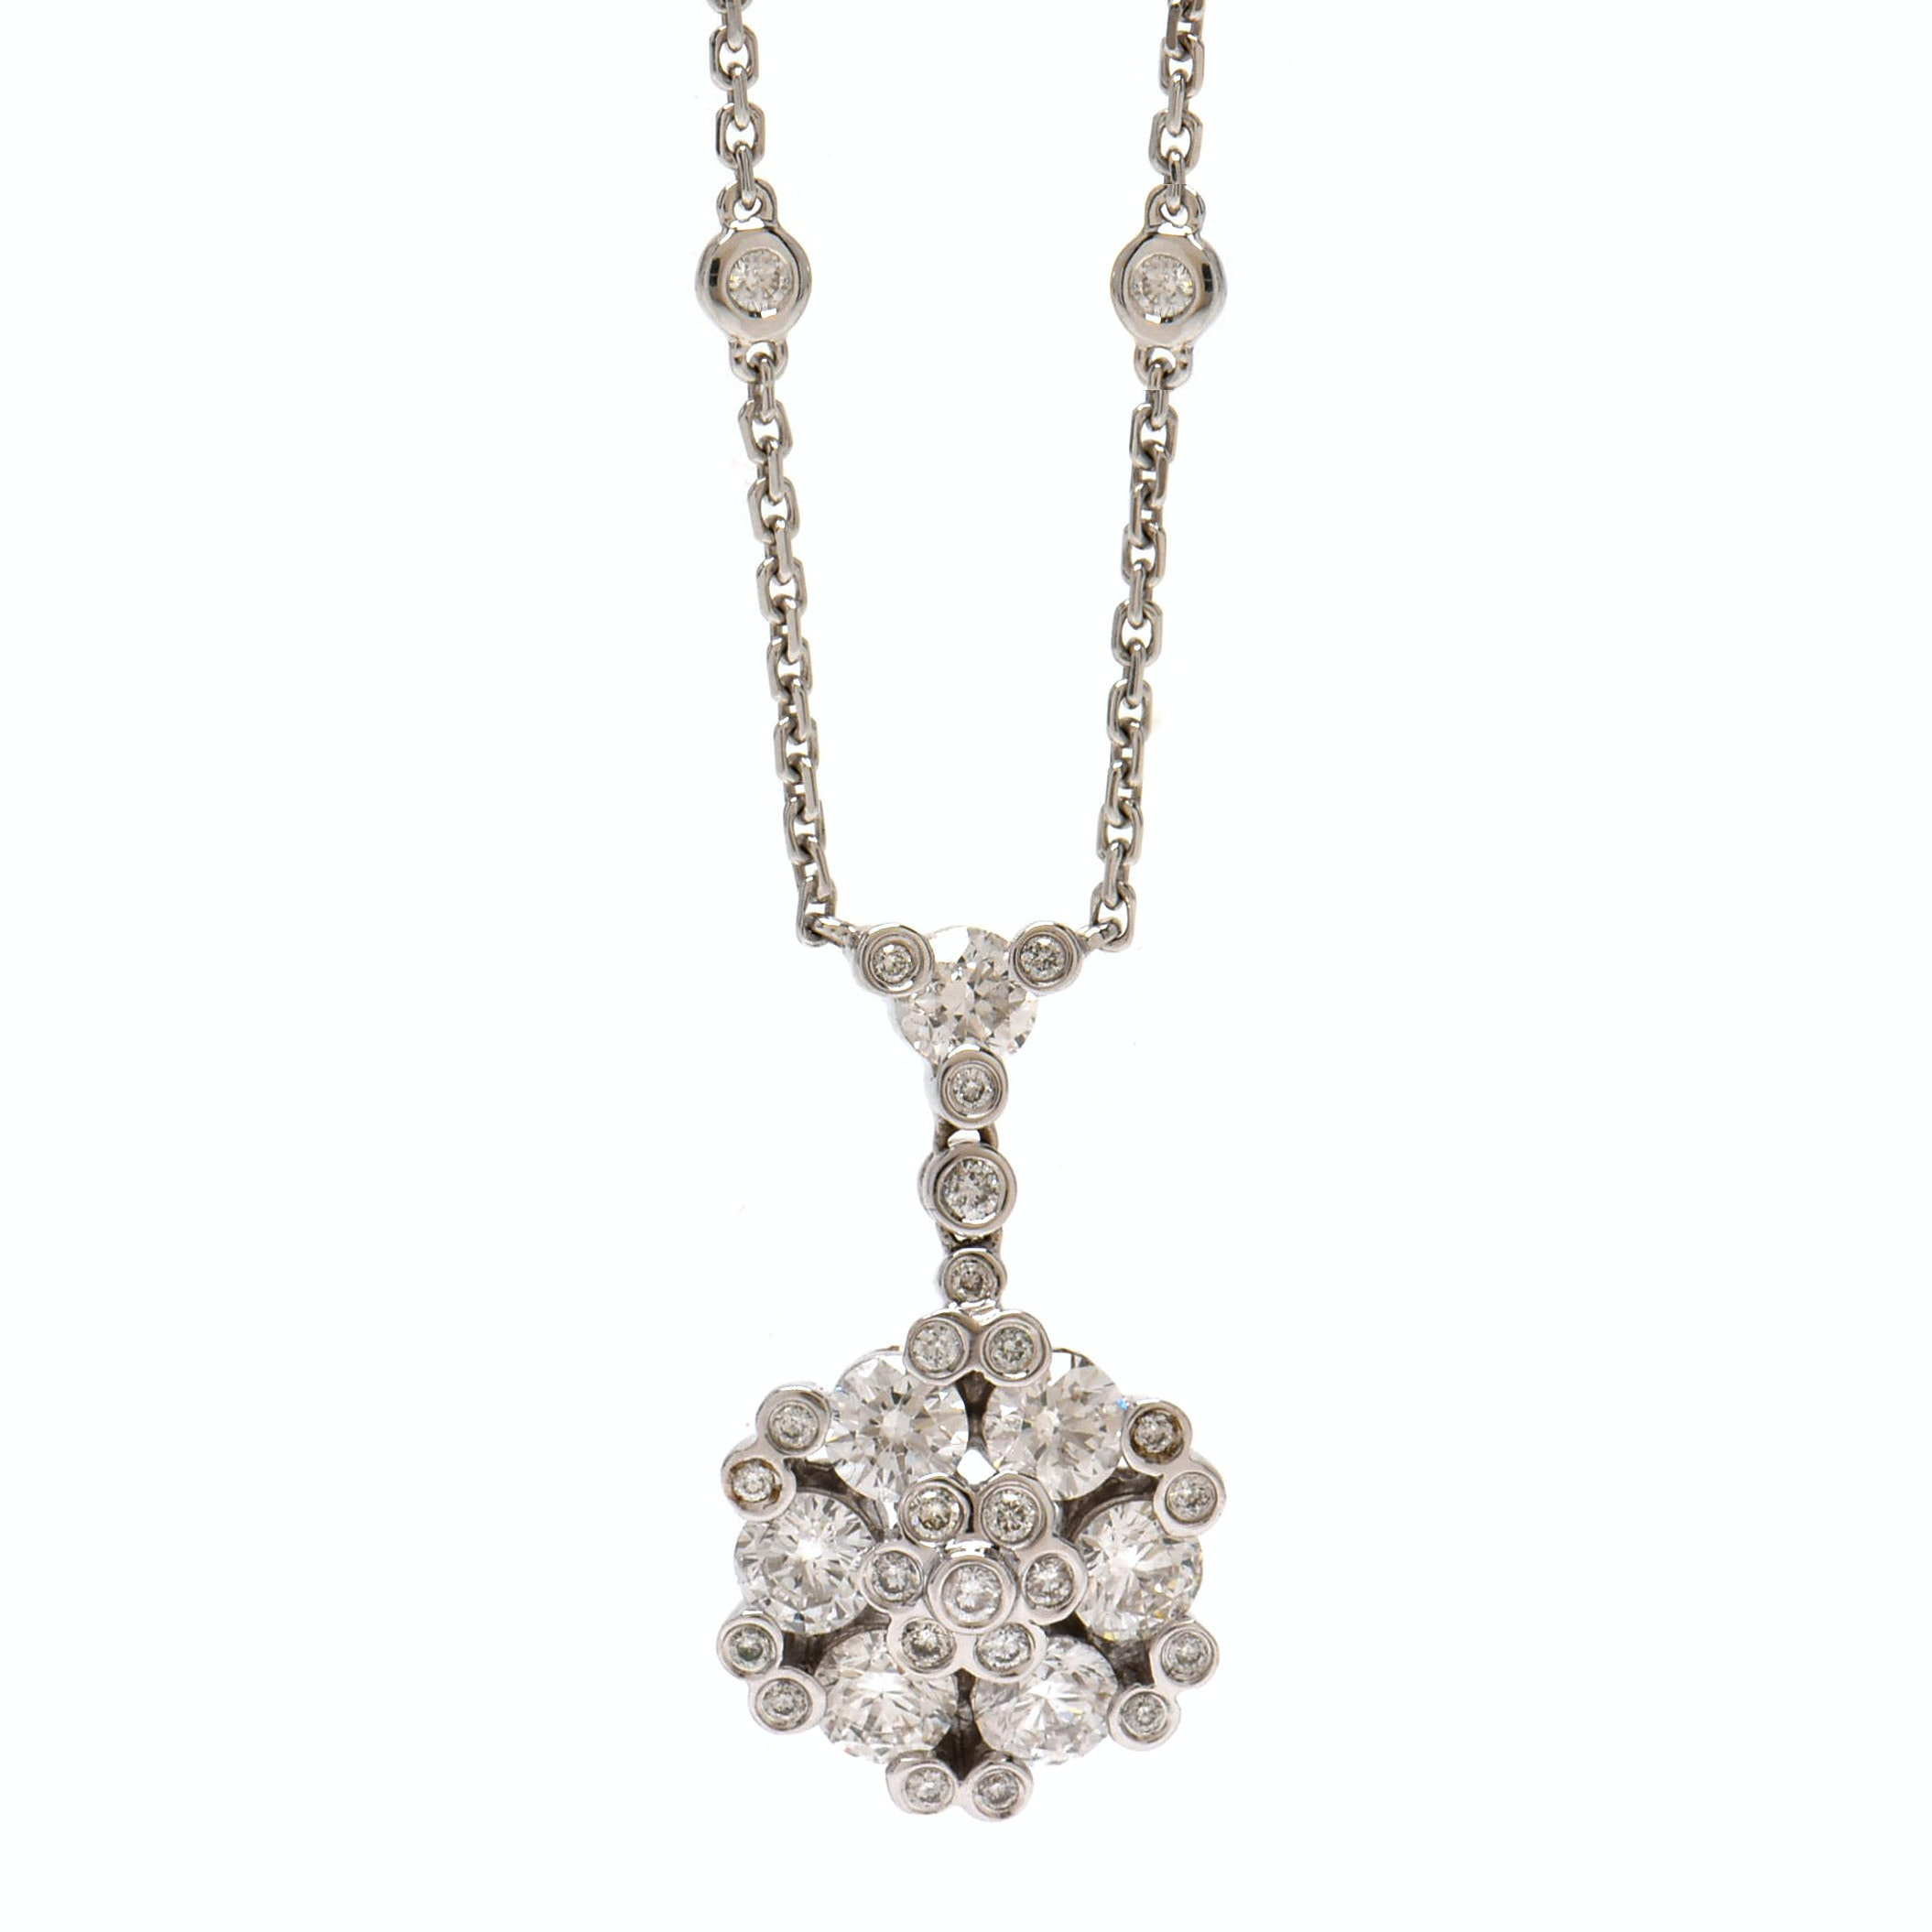 Gregg Ruth 18K White Gold 1.60 CTW Diamond Necklace